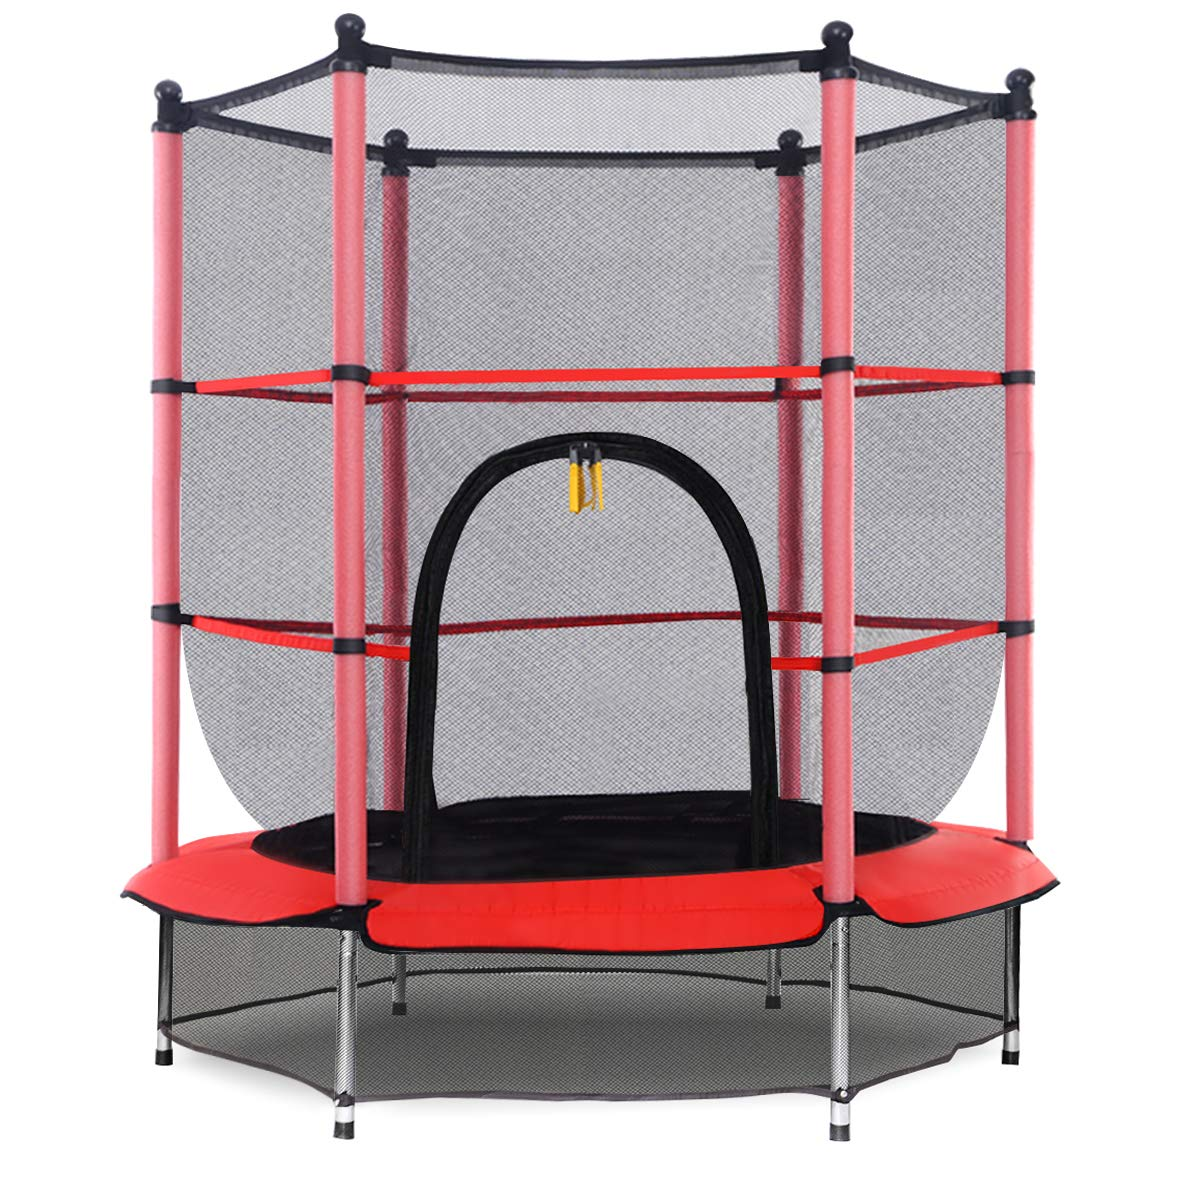 Giantex 55'' Round Kids Mini Jumping Trampoline W/Safety Pad Enclosure Combo (Red)